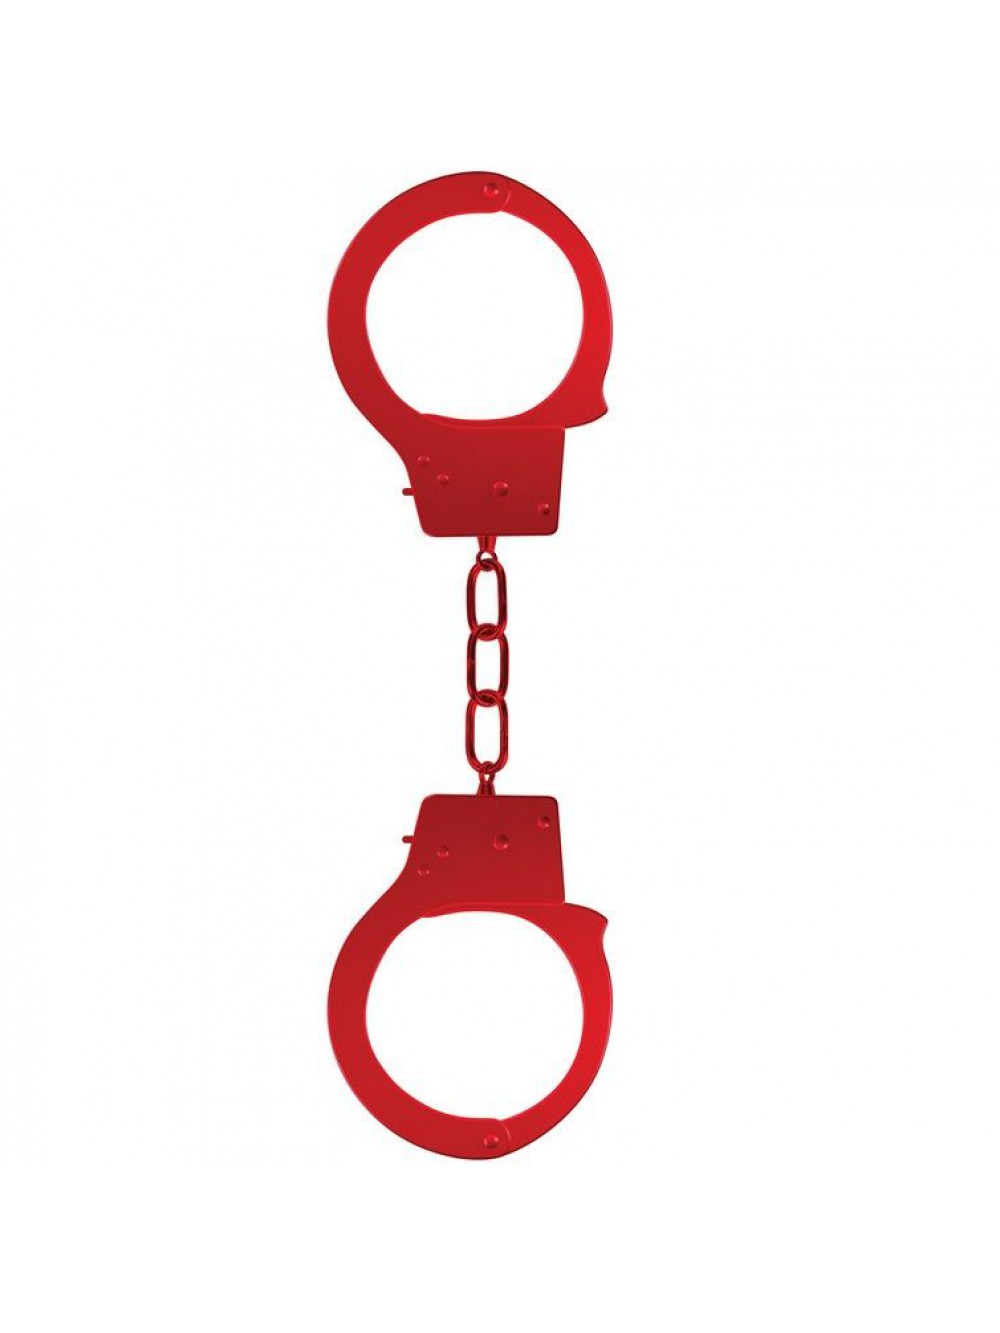 OUCH BEGINNER'S HANDCUFFS RED 8714273074041